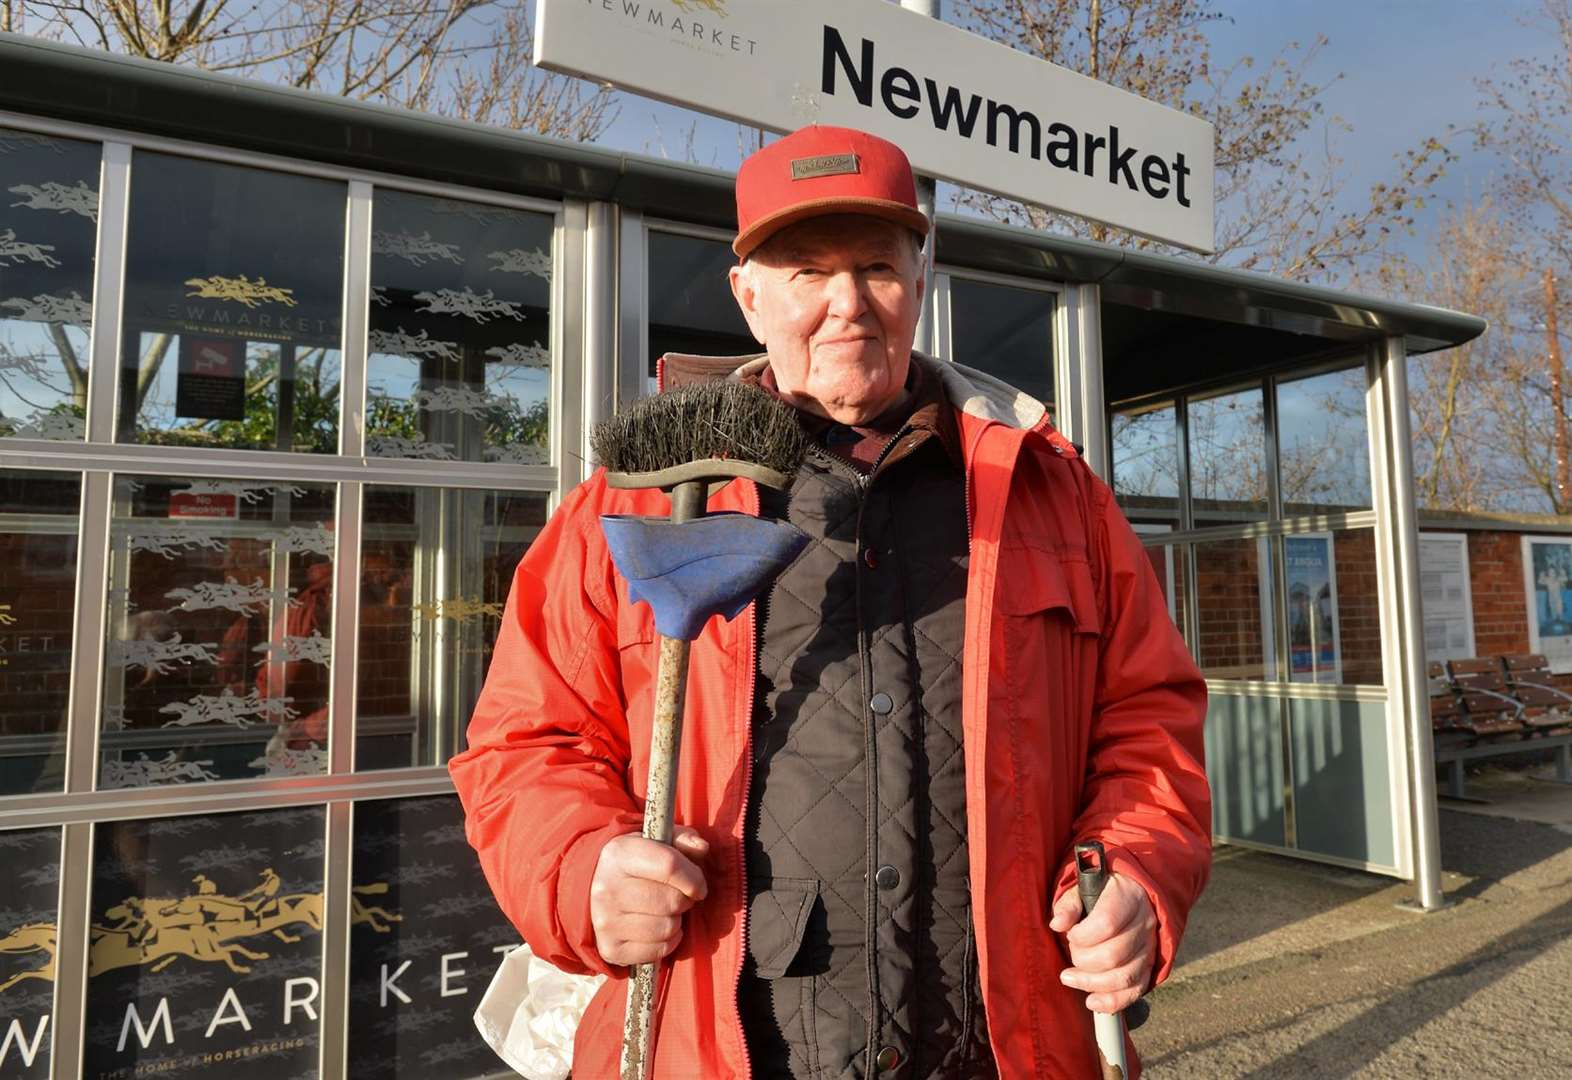 Retired Michael tidies up Newmarket's station